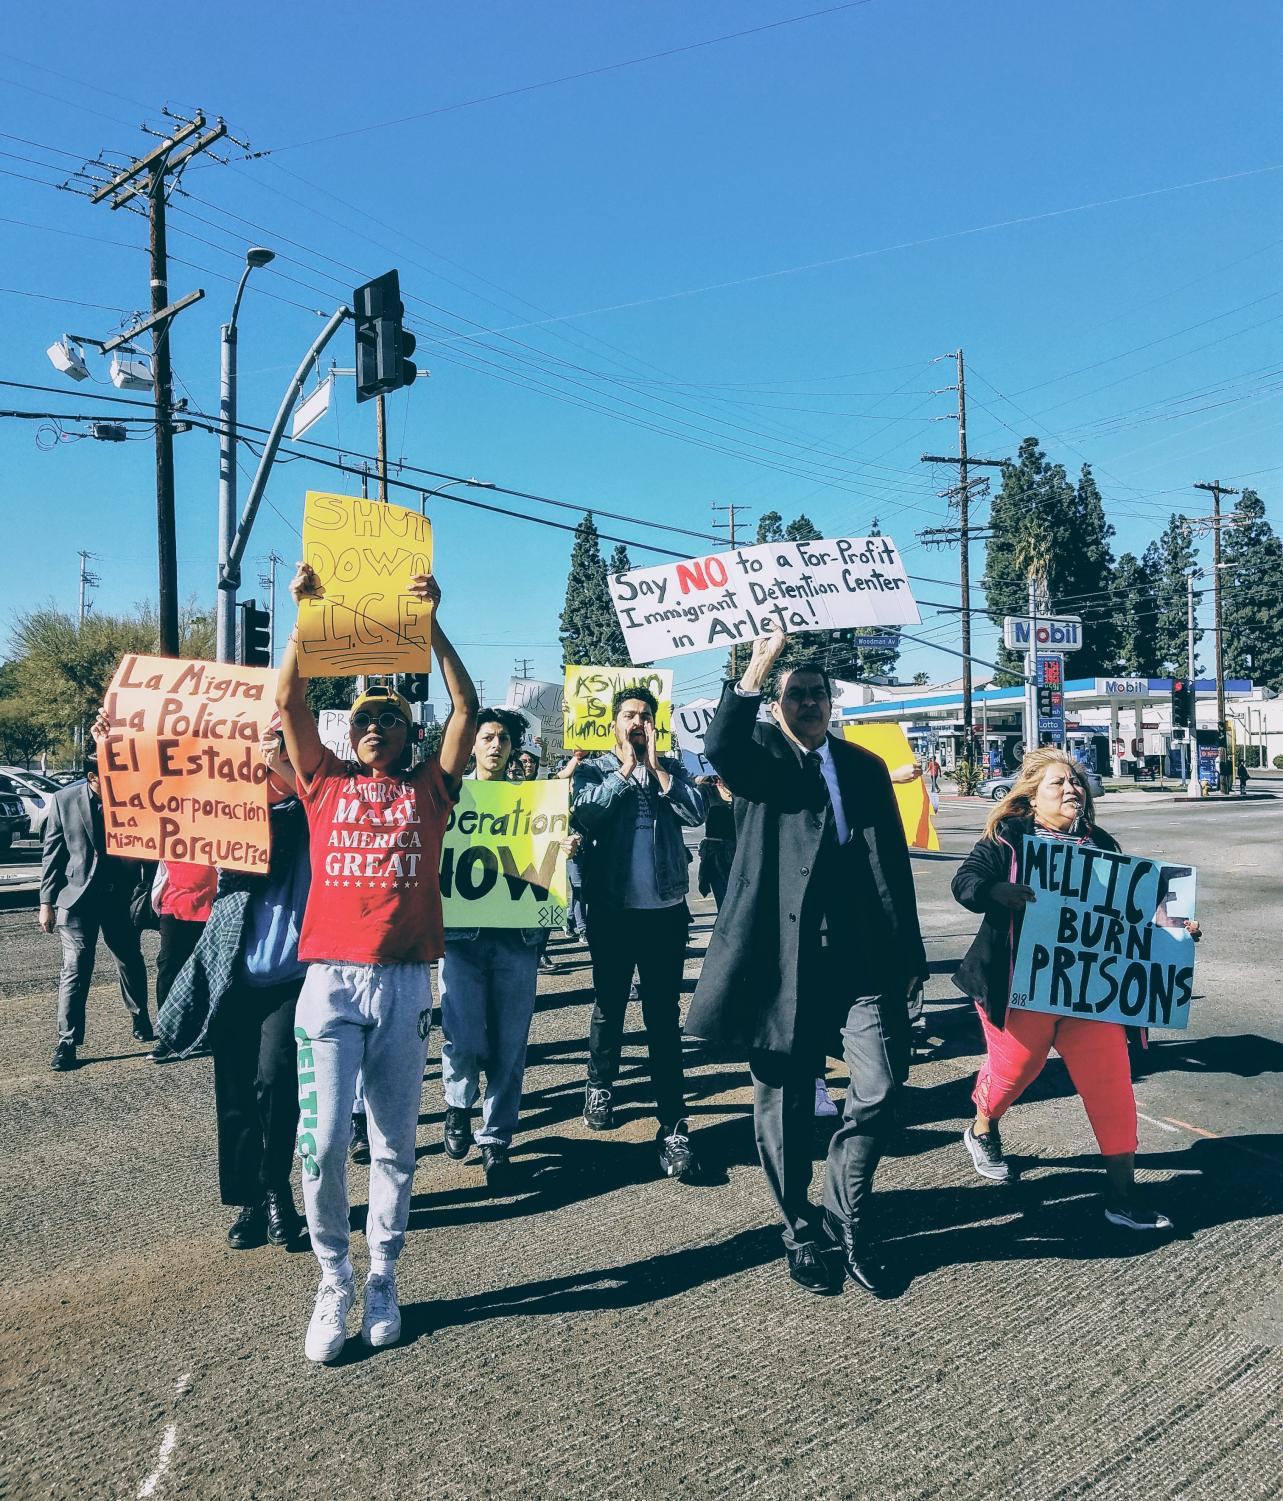 Protesters walk down Nordhoff Street and Woodman Avenue, crossroads in the city of Arleta, where VisionQuest is set to open a migrant children's detention center. Photo credit: Ivan Salinas